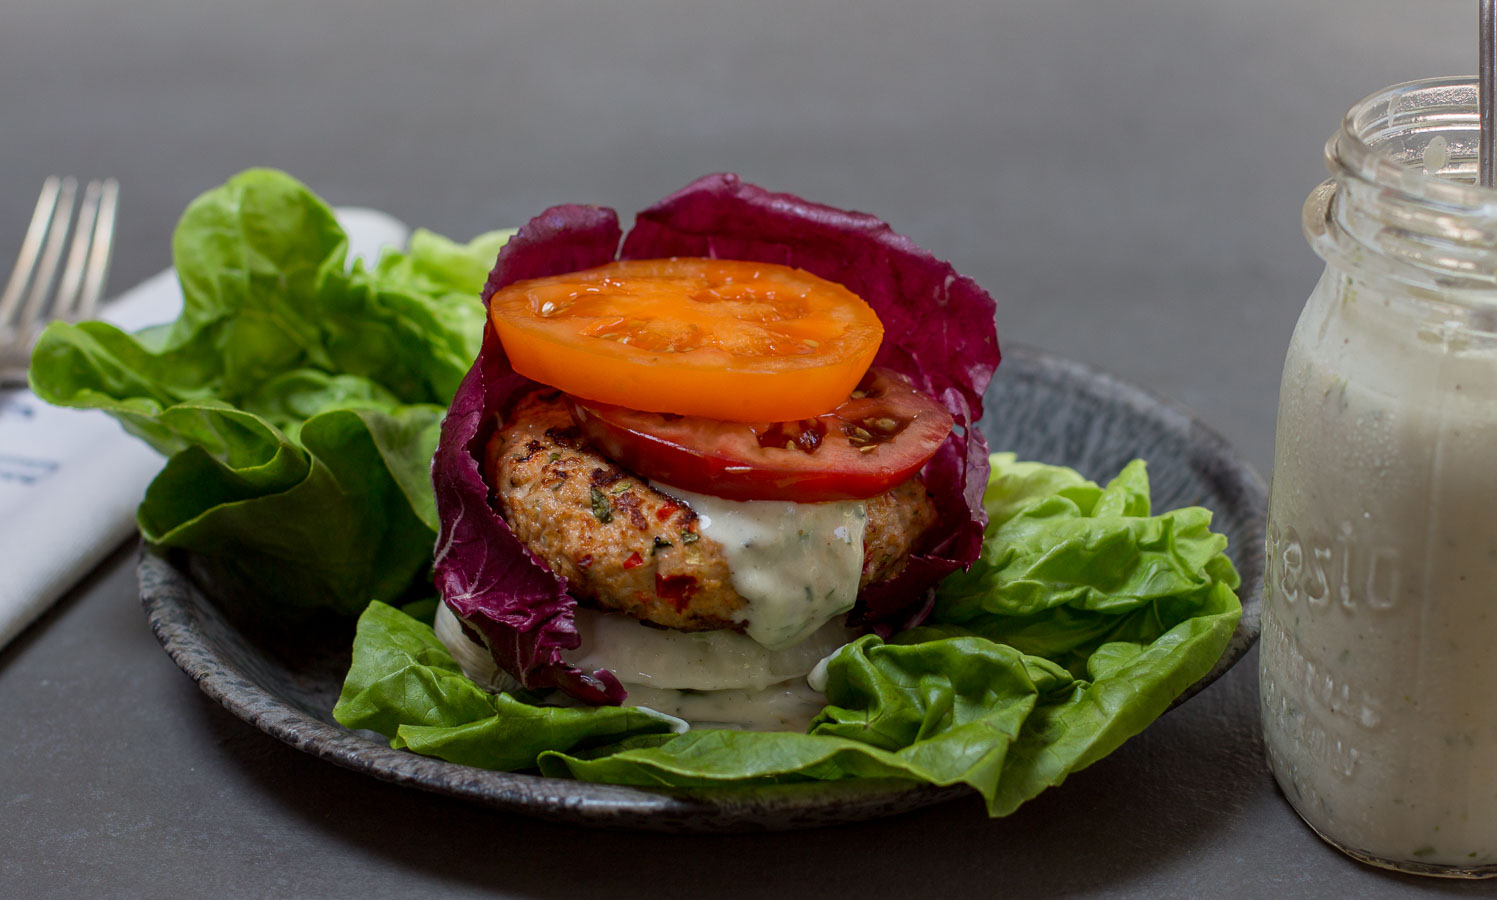 The Ultimate Grilled Burger Wrapped in Lettuces with Onion and Heirloom Tomatoes ~ Homemade Ranch Dressing.